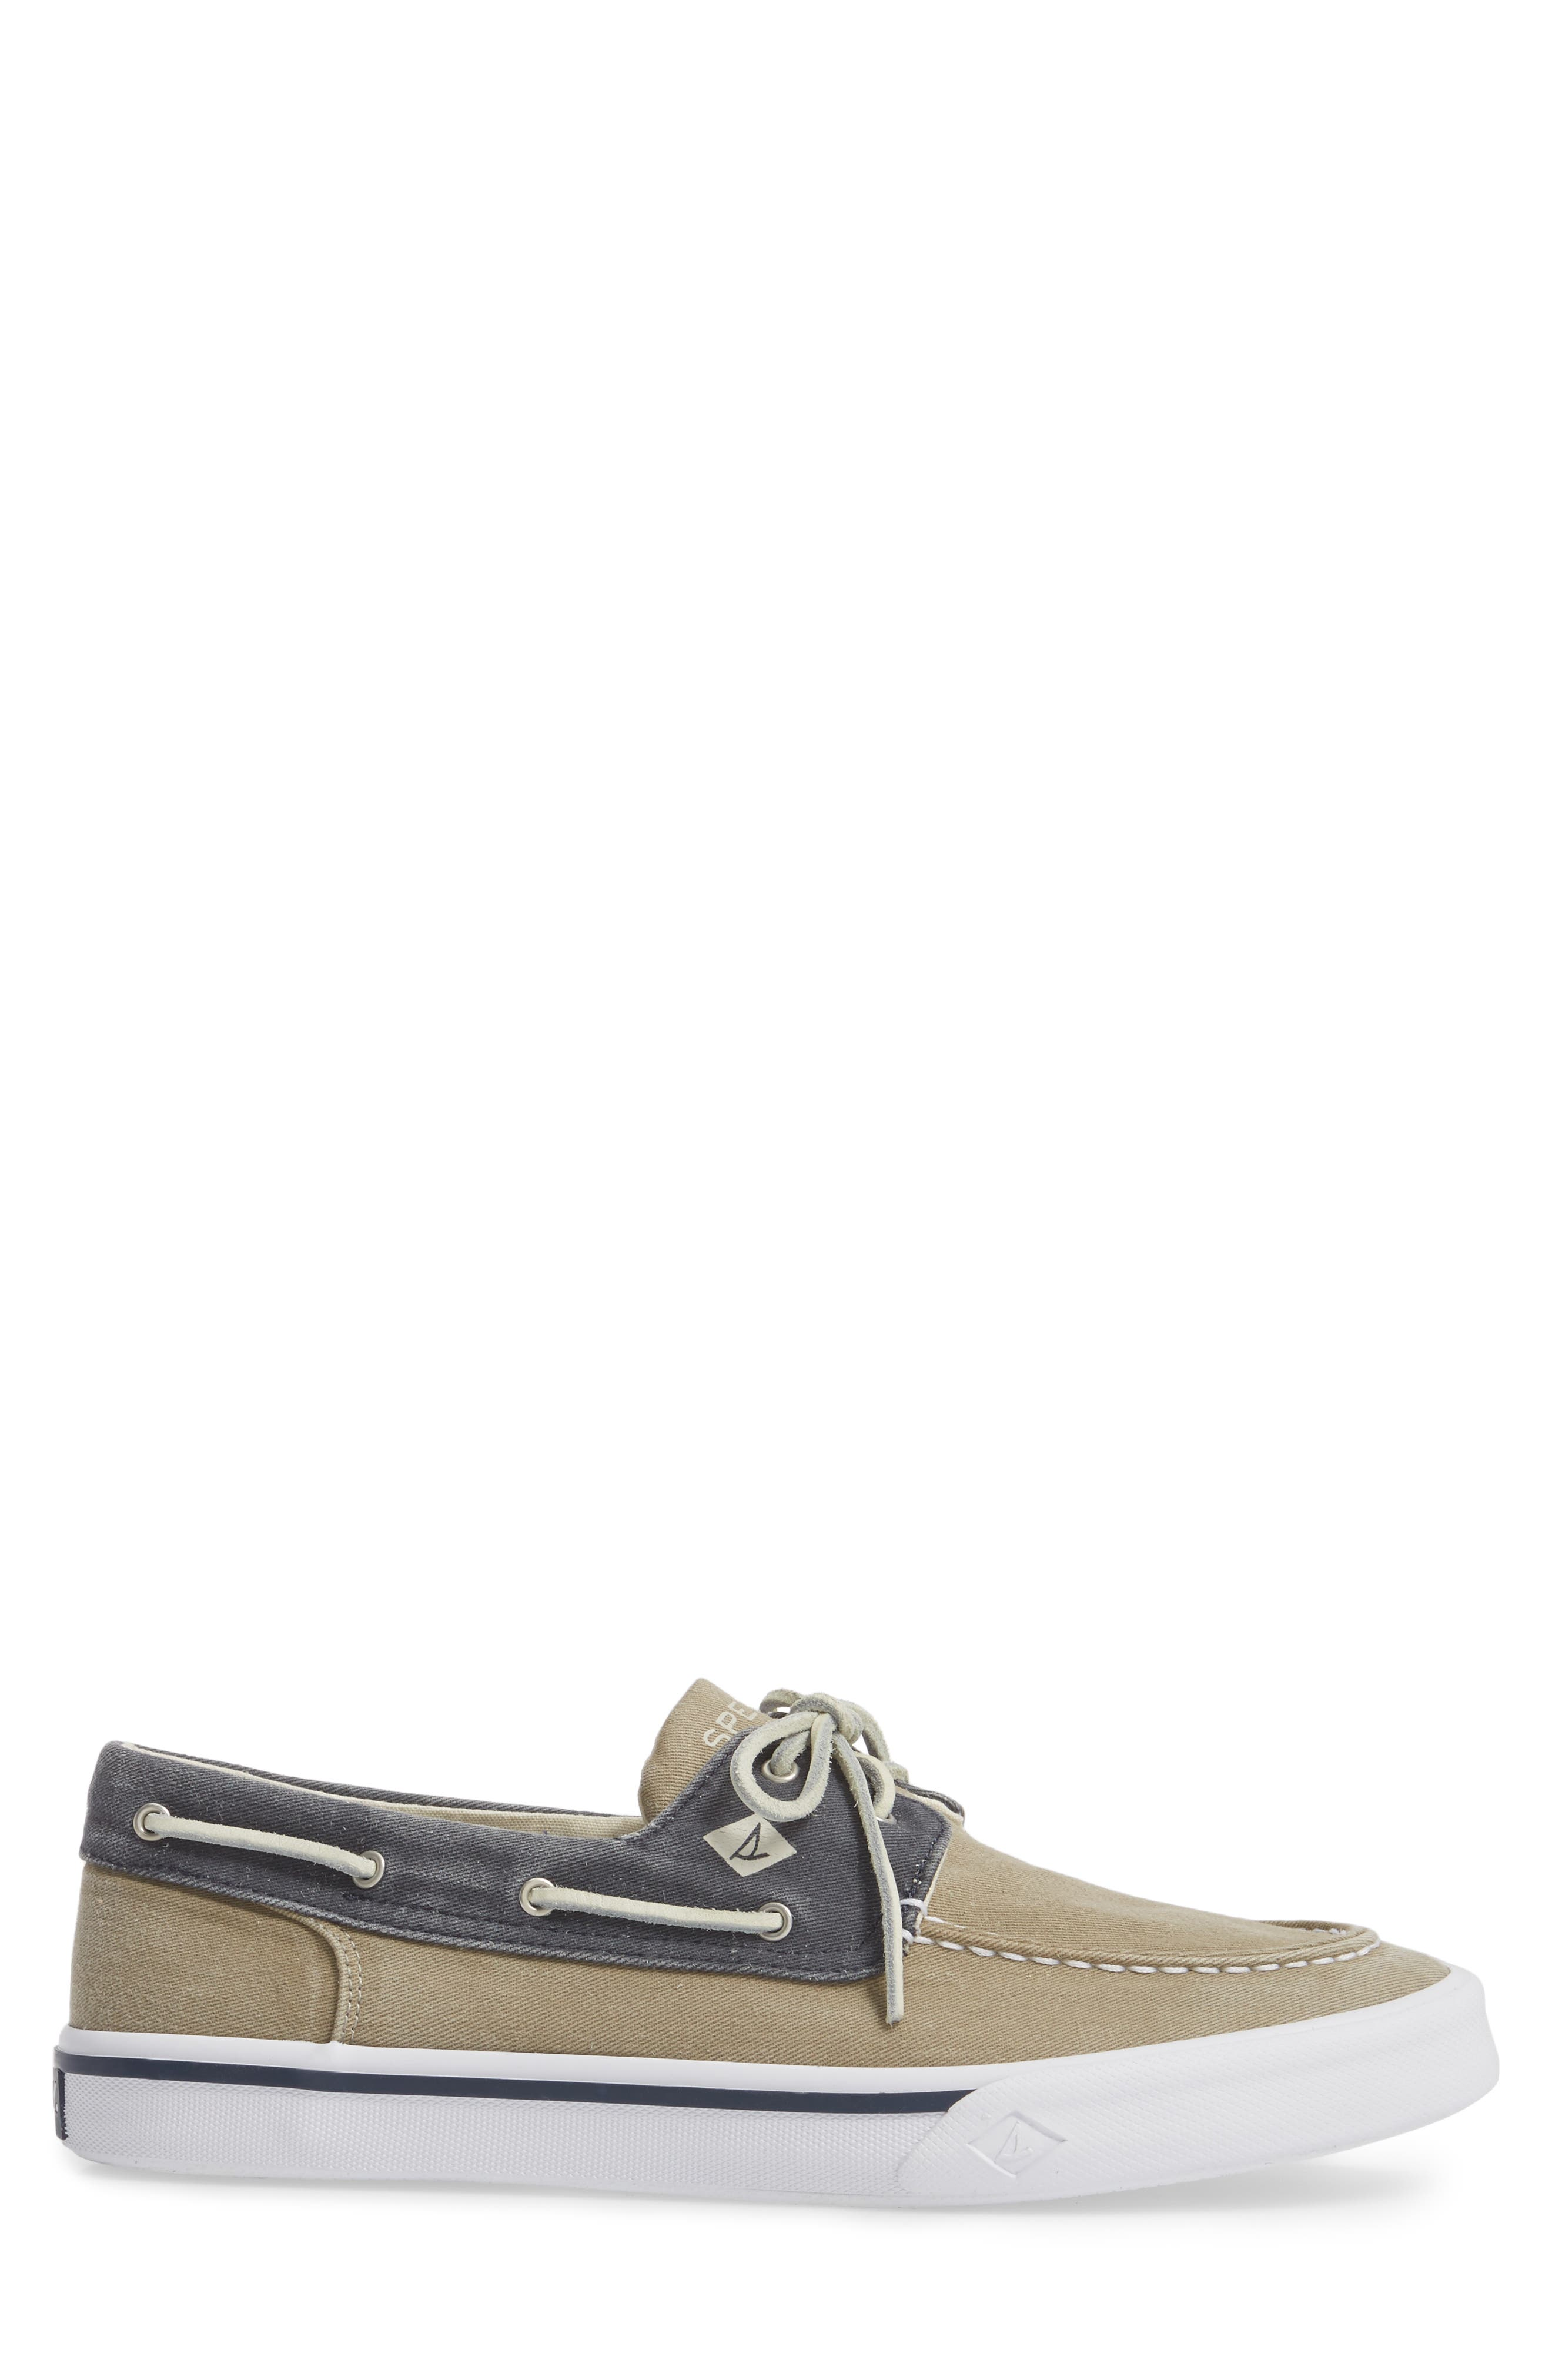 Striper II Boat Shoe,                             Alternate thumbnail 3, color,                             Taupe/ Navy